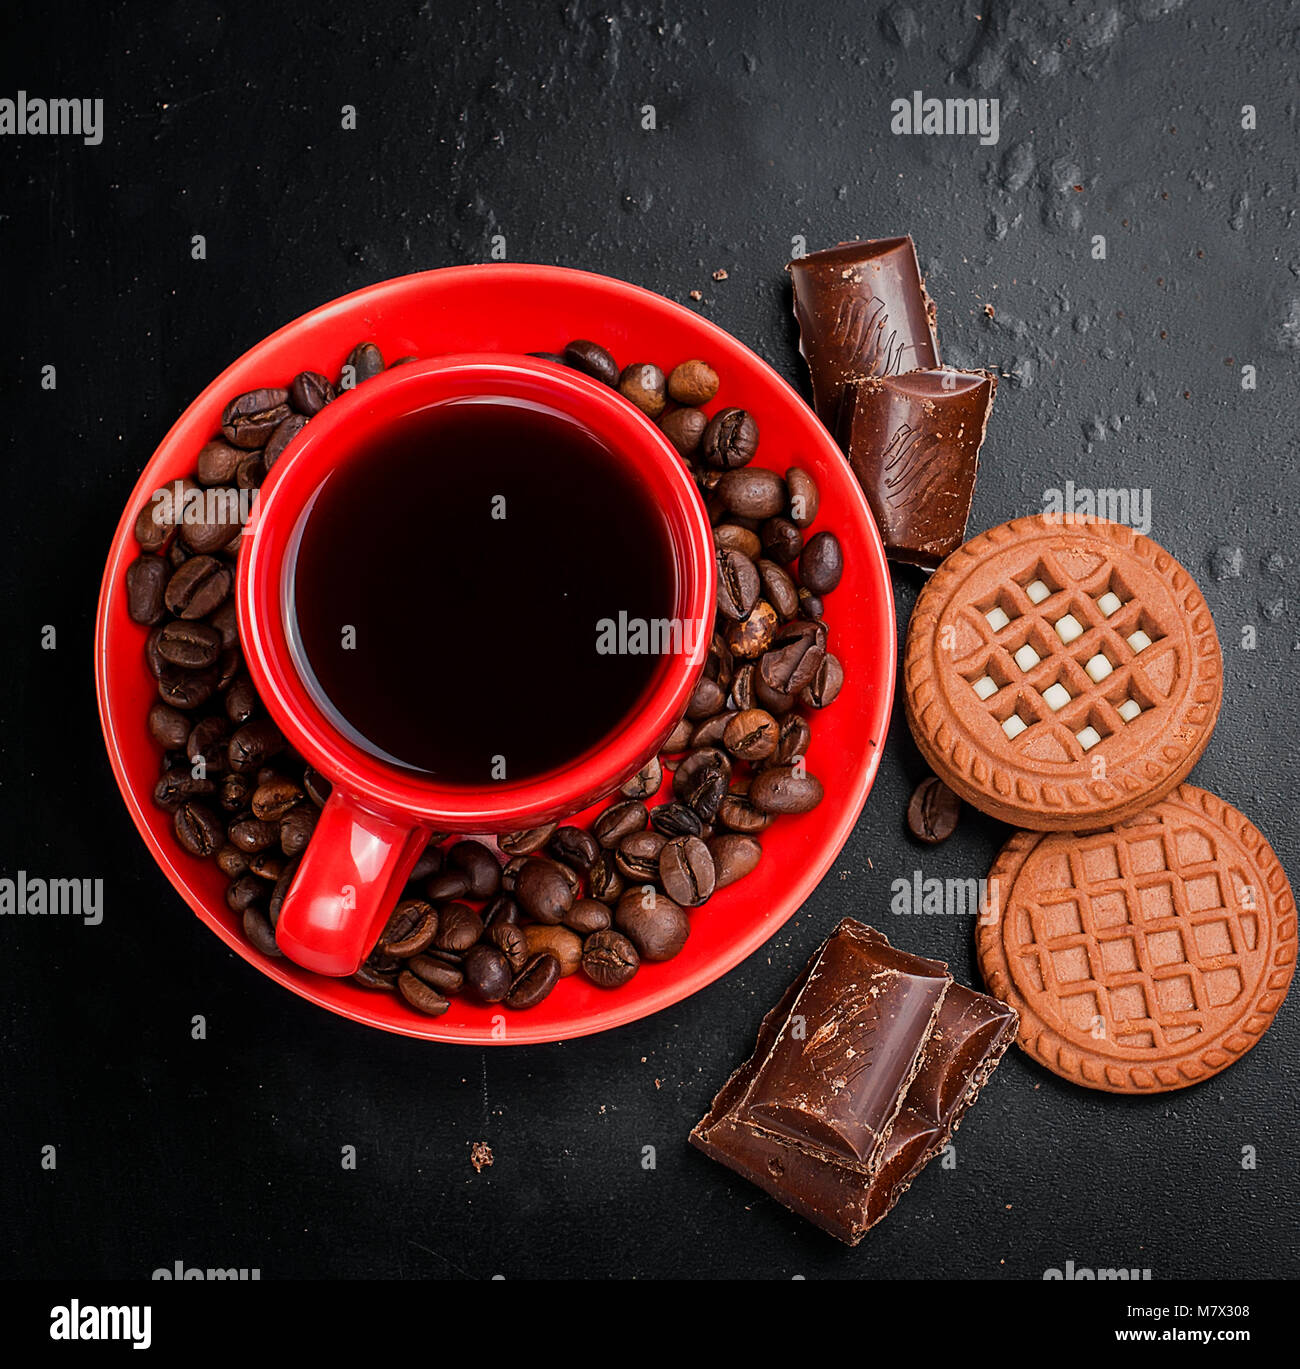 red cup of hot strong coffee with chocolate cookies and pieces of dark chocolate and coffee beans on a black background, - Stock Image